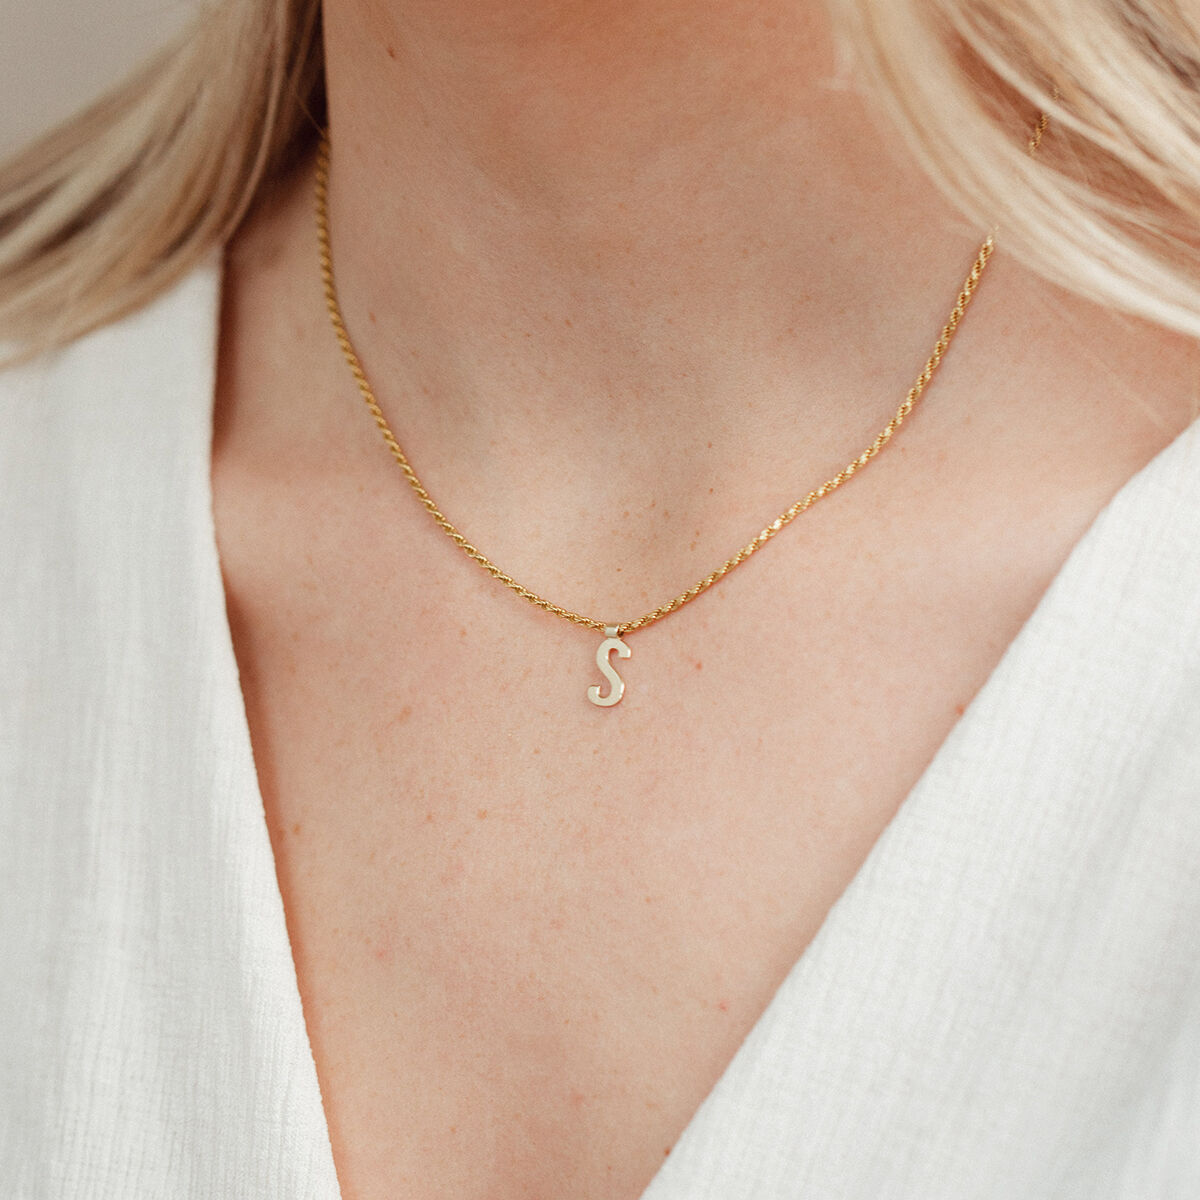 Ruby Rope Letter Necklace goud S model